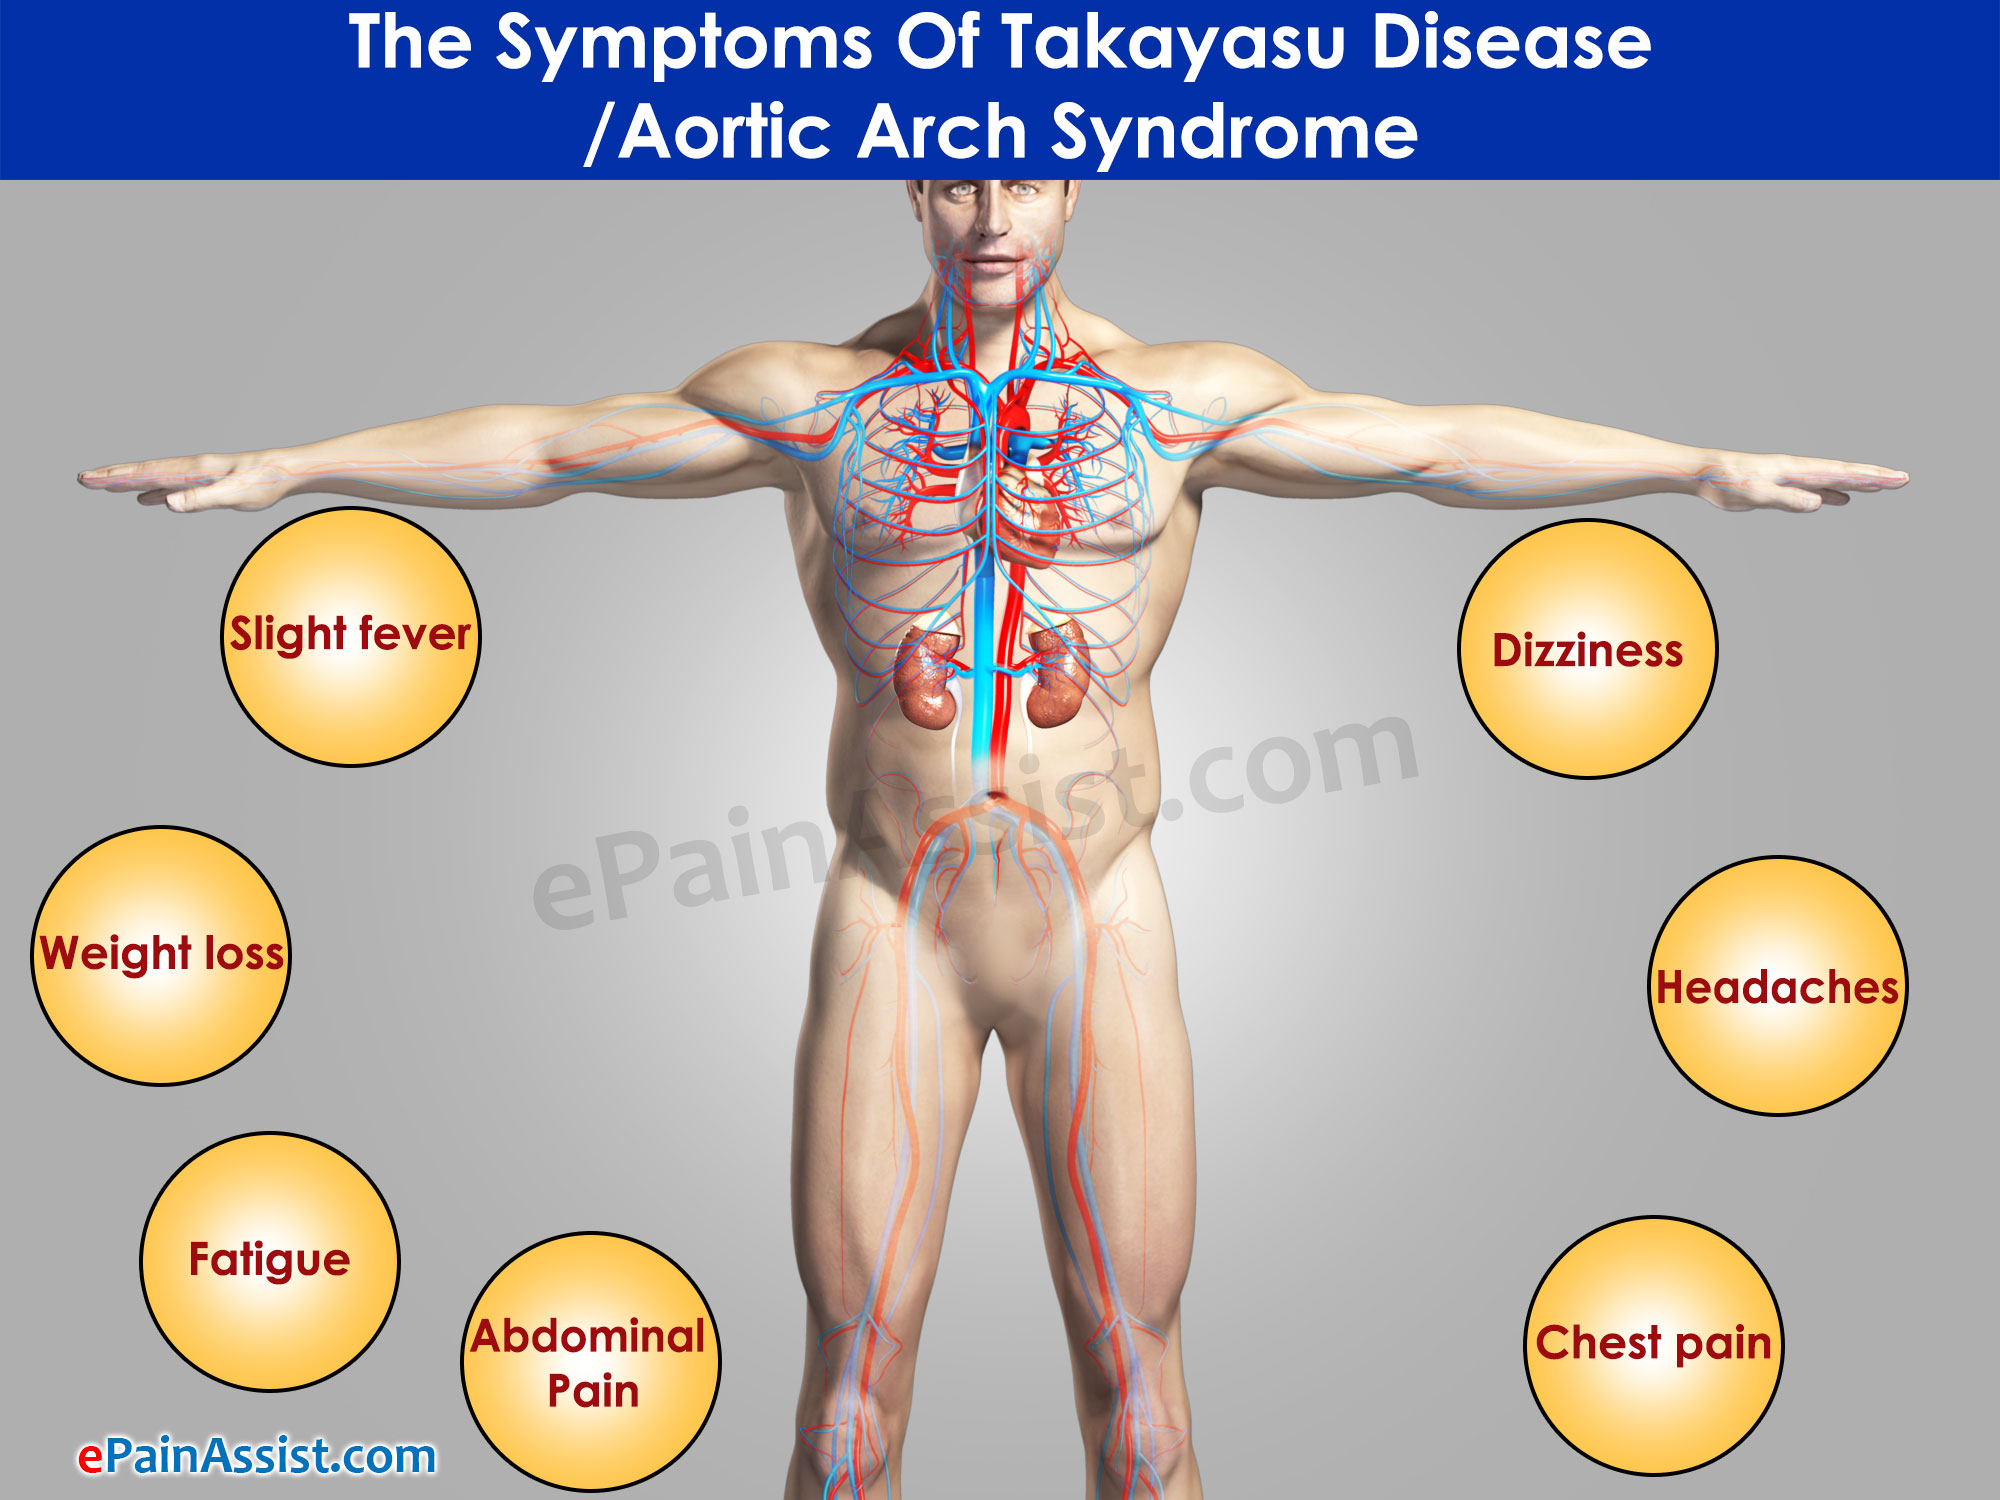 Symptoms Of Takayasu Disease/Aortic Arch Syndrome